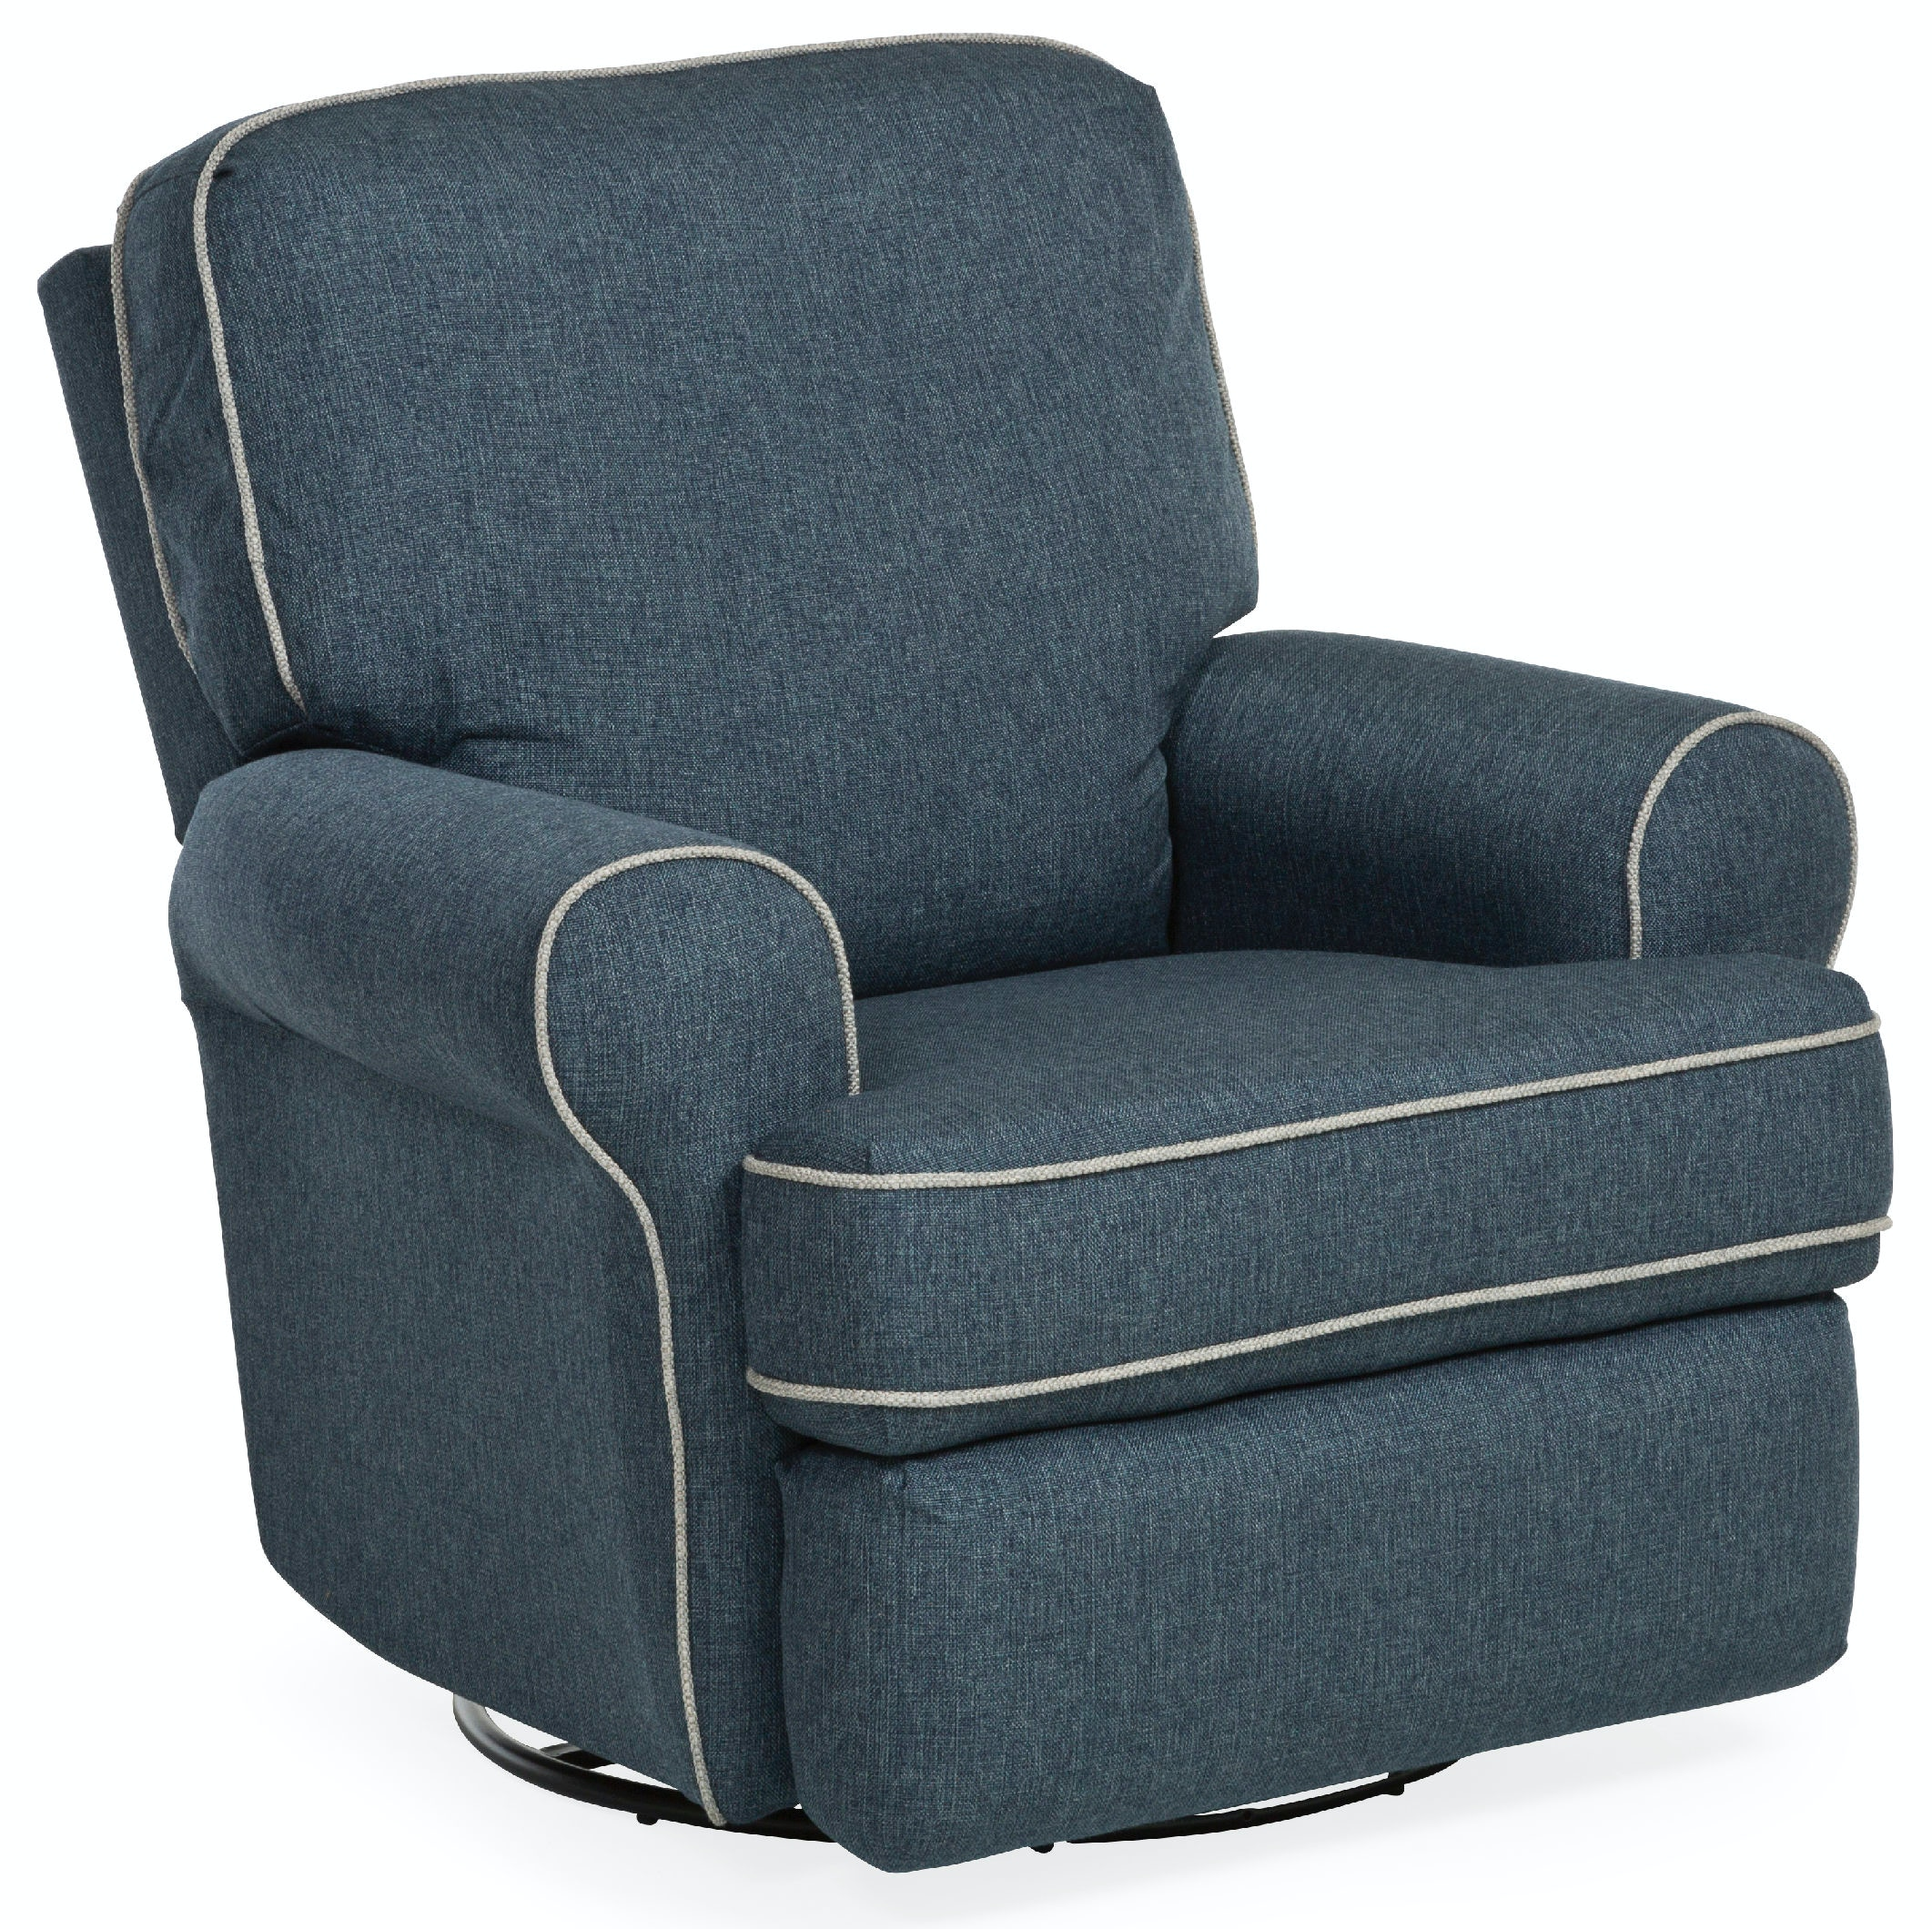 Baby Tryp SwivelGlider Recliner Chair